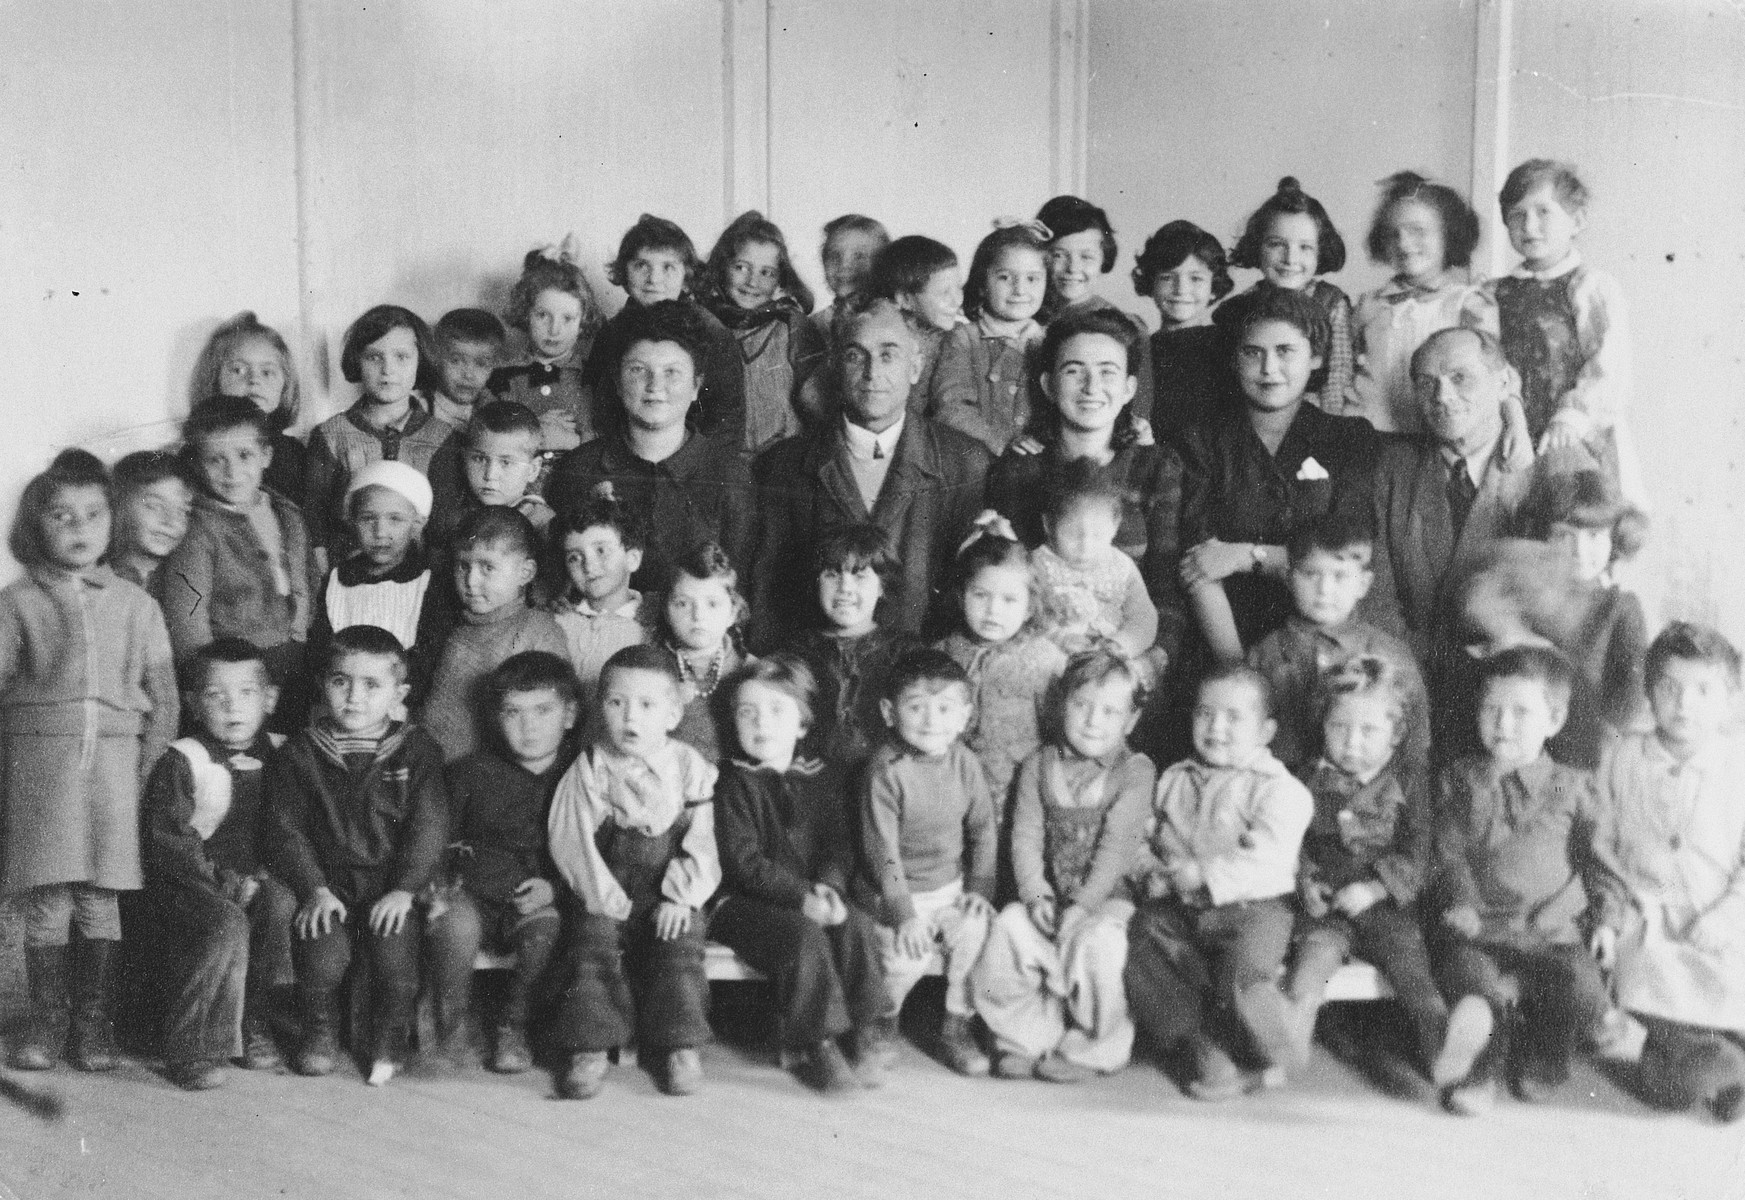 Teachers and young children in the elementary school in the Ainring displaced persons camp.  Among those pictured is the teacher, Sara Michlowitz (Muschel), center row, third from the right.  Also pictured is Rachel Yudkowitz (seventh child standing from the left , wearing a bow in her hair).